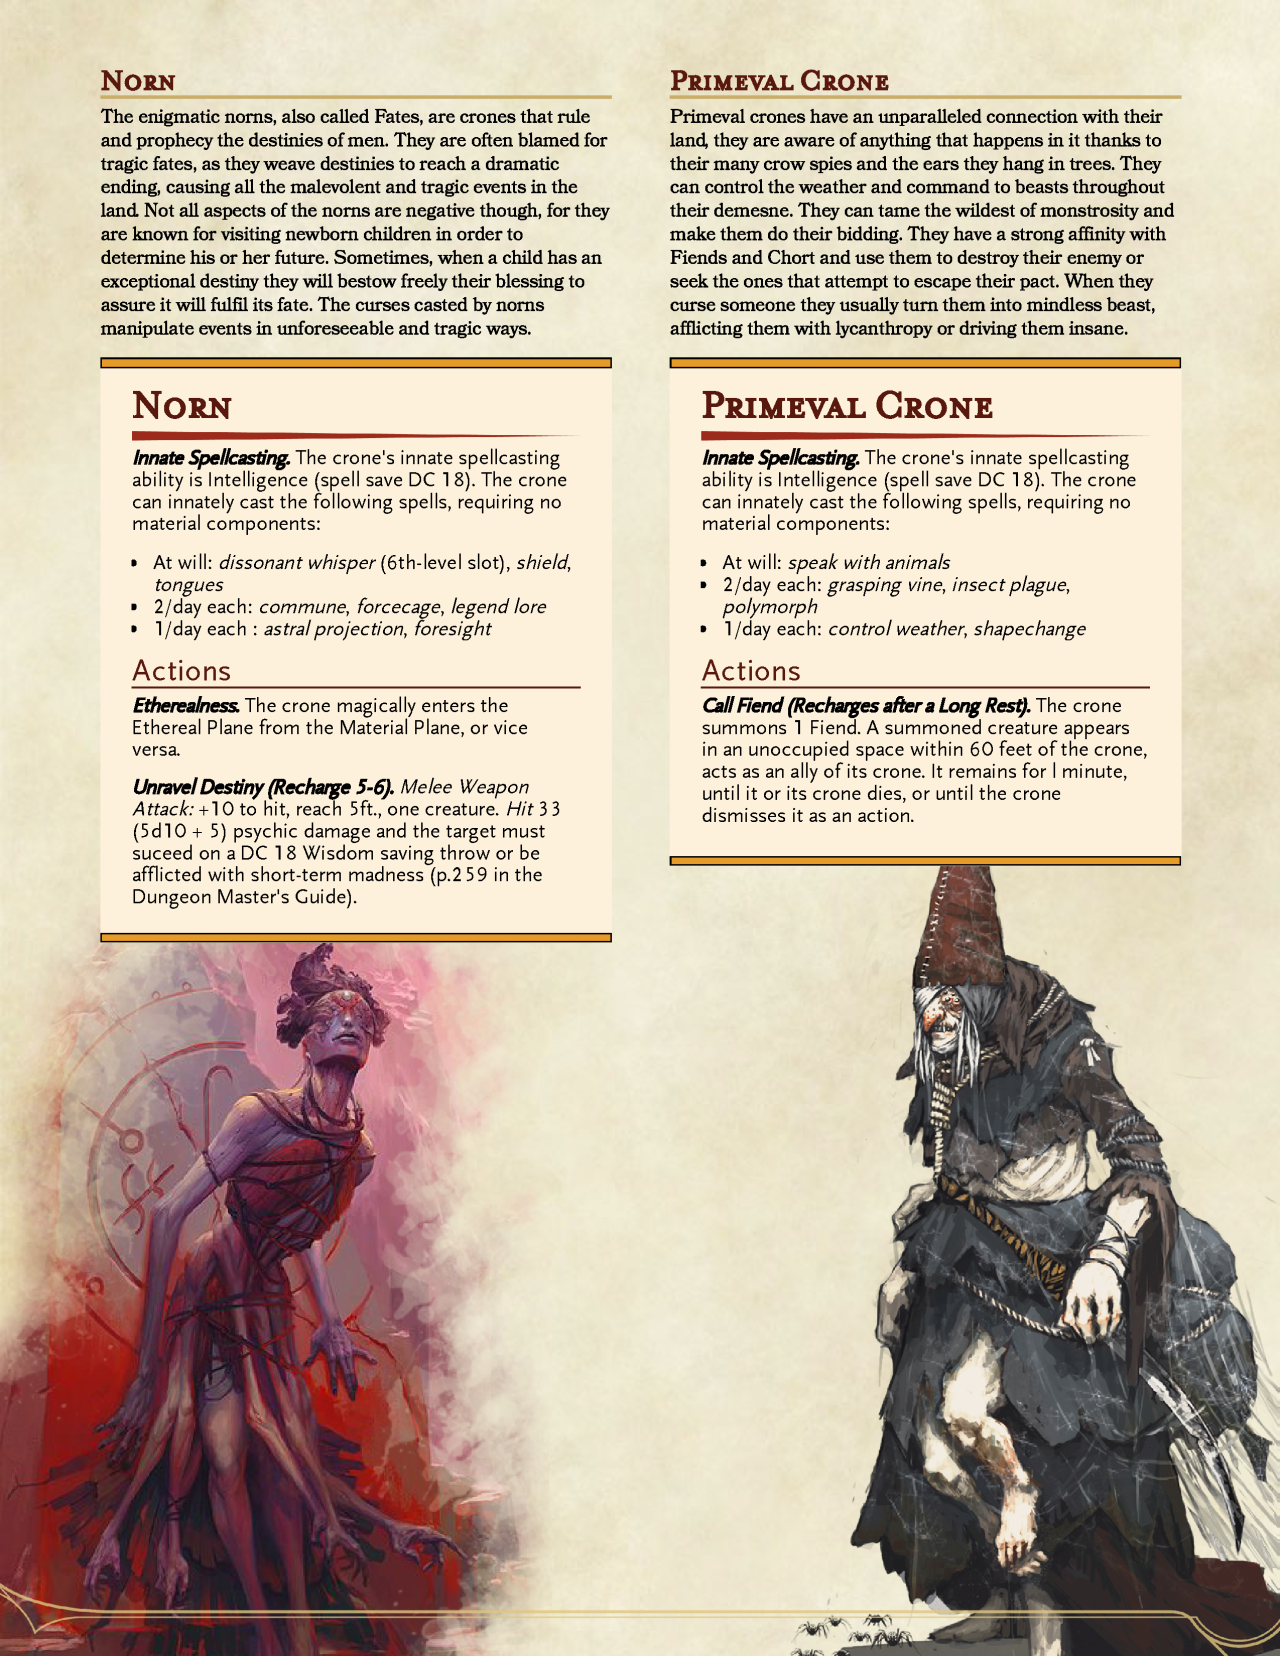 DnD 5e Homebrew: Norn and Primeval Crone | Dungeons and